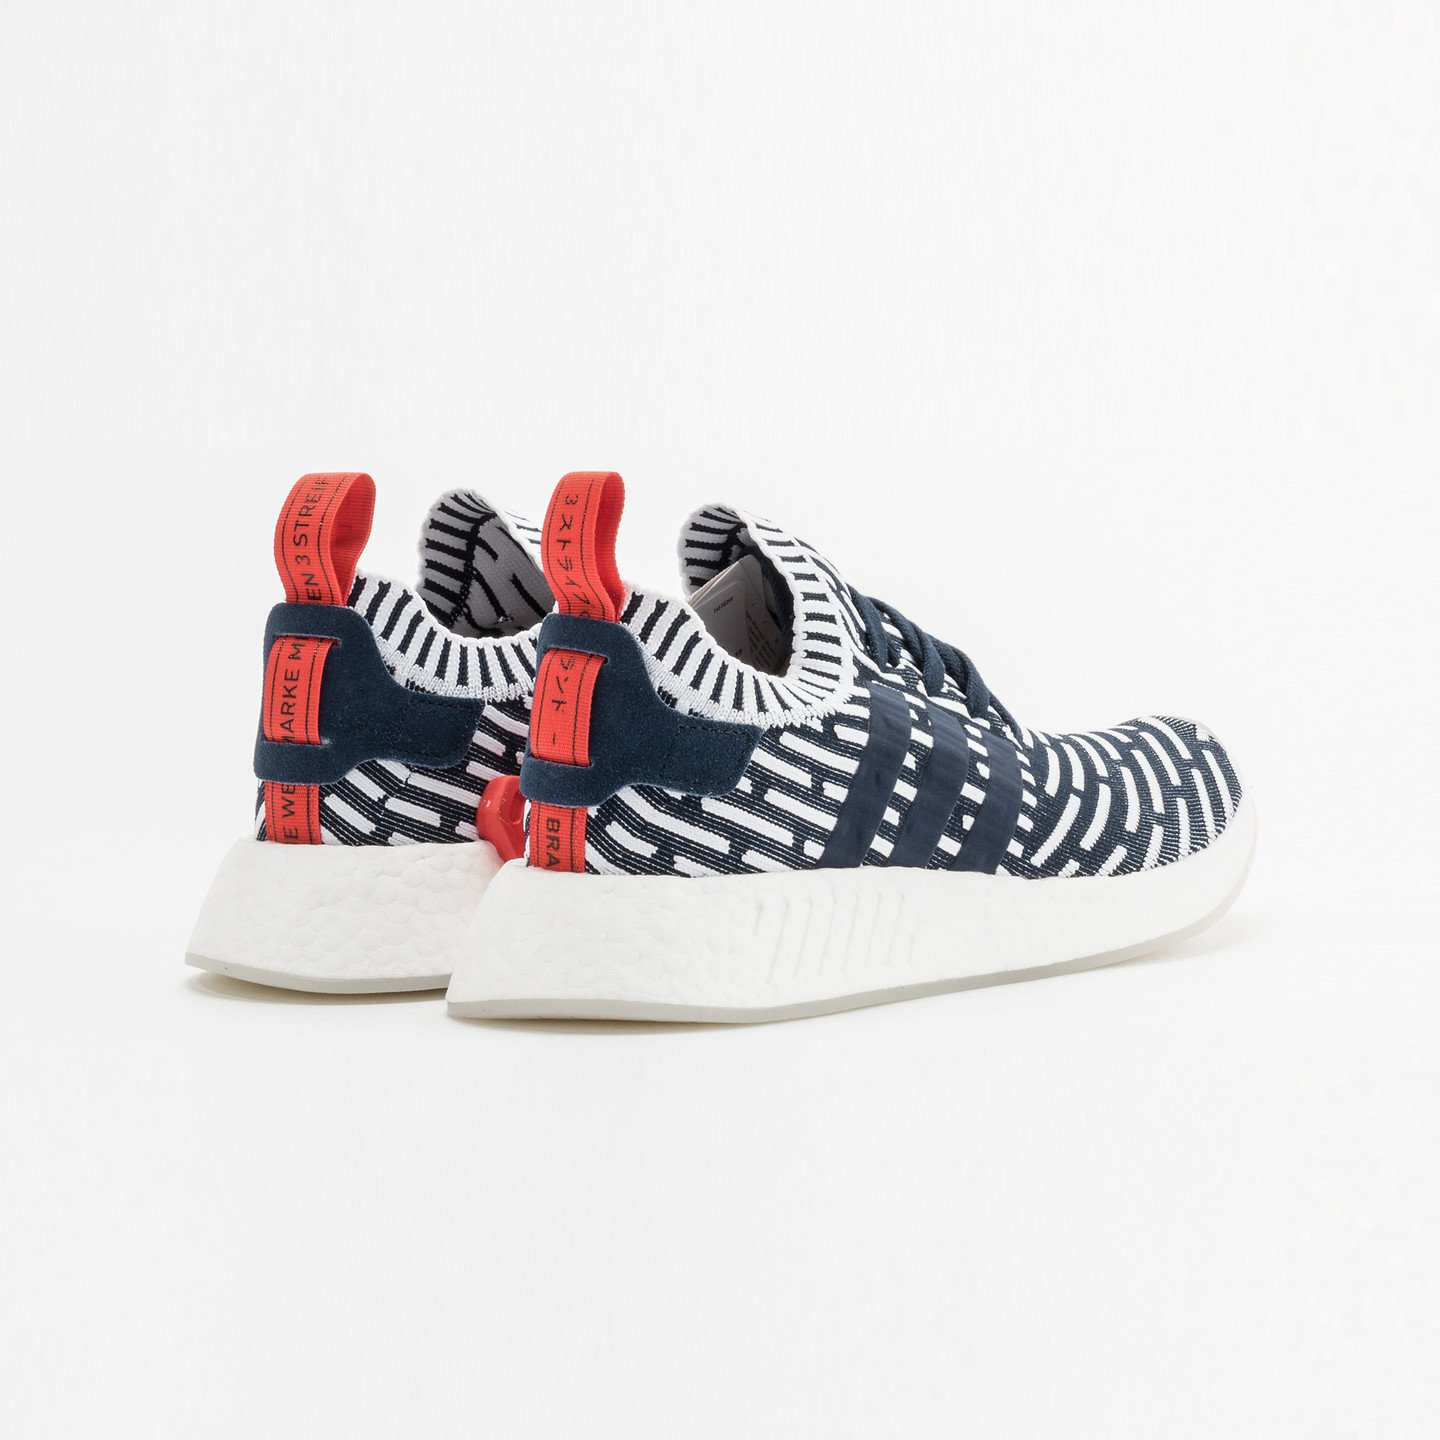 Adidas NMD R2 PK Collegiate Navy / White BB2909